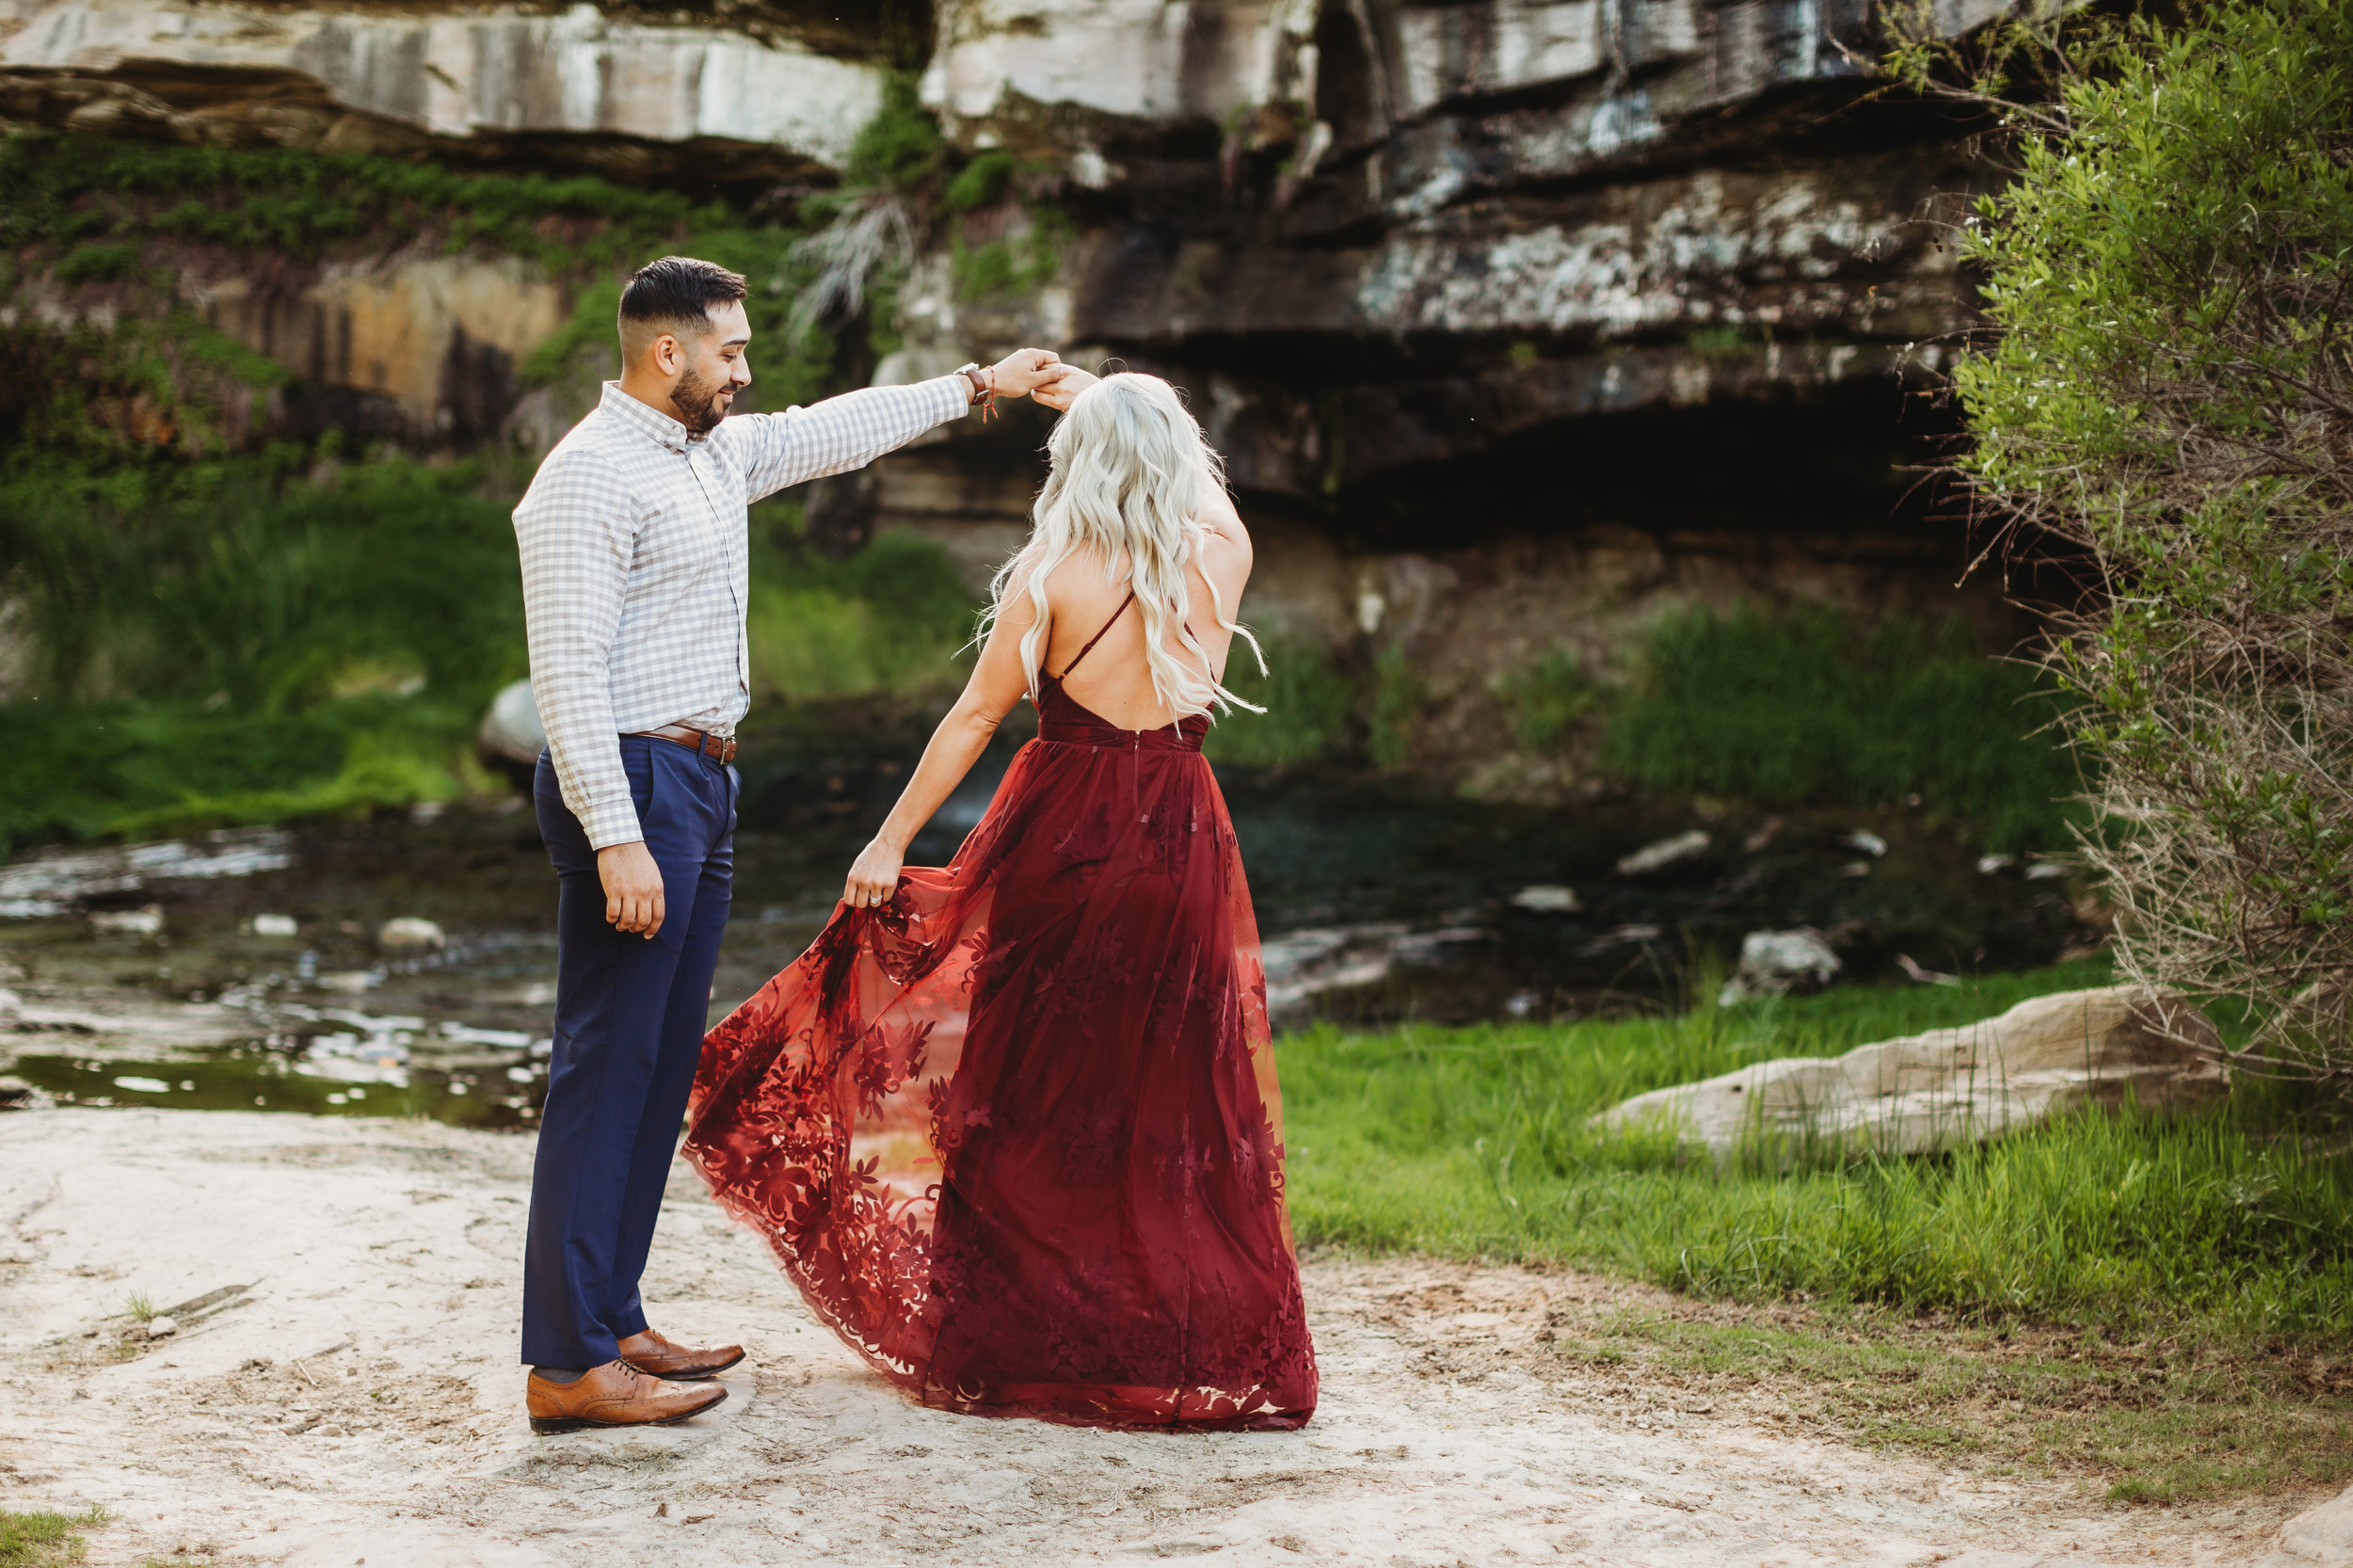 Engaged couple dancing in front of green foliage she is wearing a ruby red formal dress #engagementphotos #riverfalls #engaged #personality #amarillotexas #engagementphotographer #lifestylephotos #amarillophotographer #locationchoice #texasengagementphotos #engagment #tealawardphotography #wildliferefuge